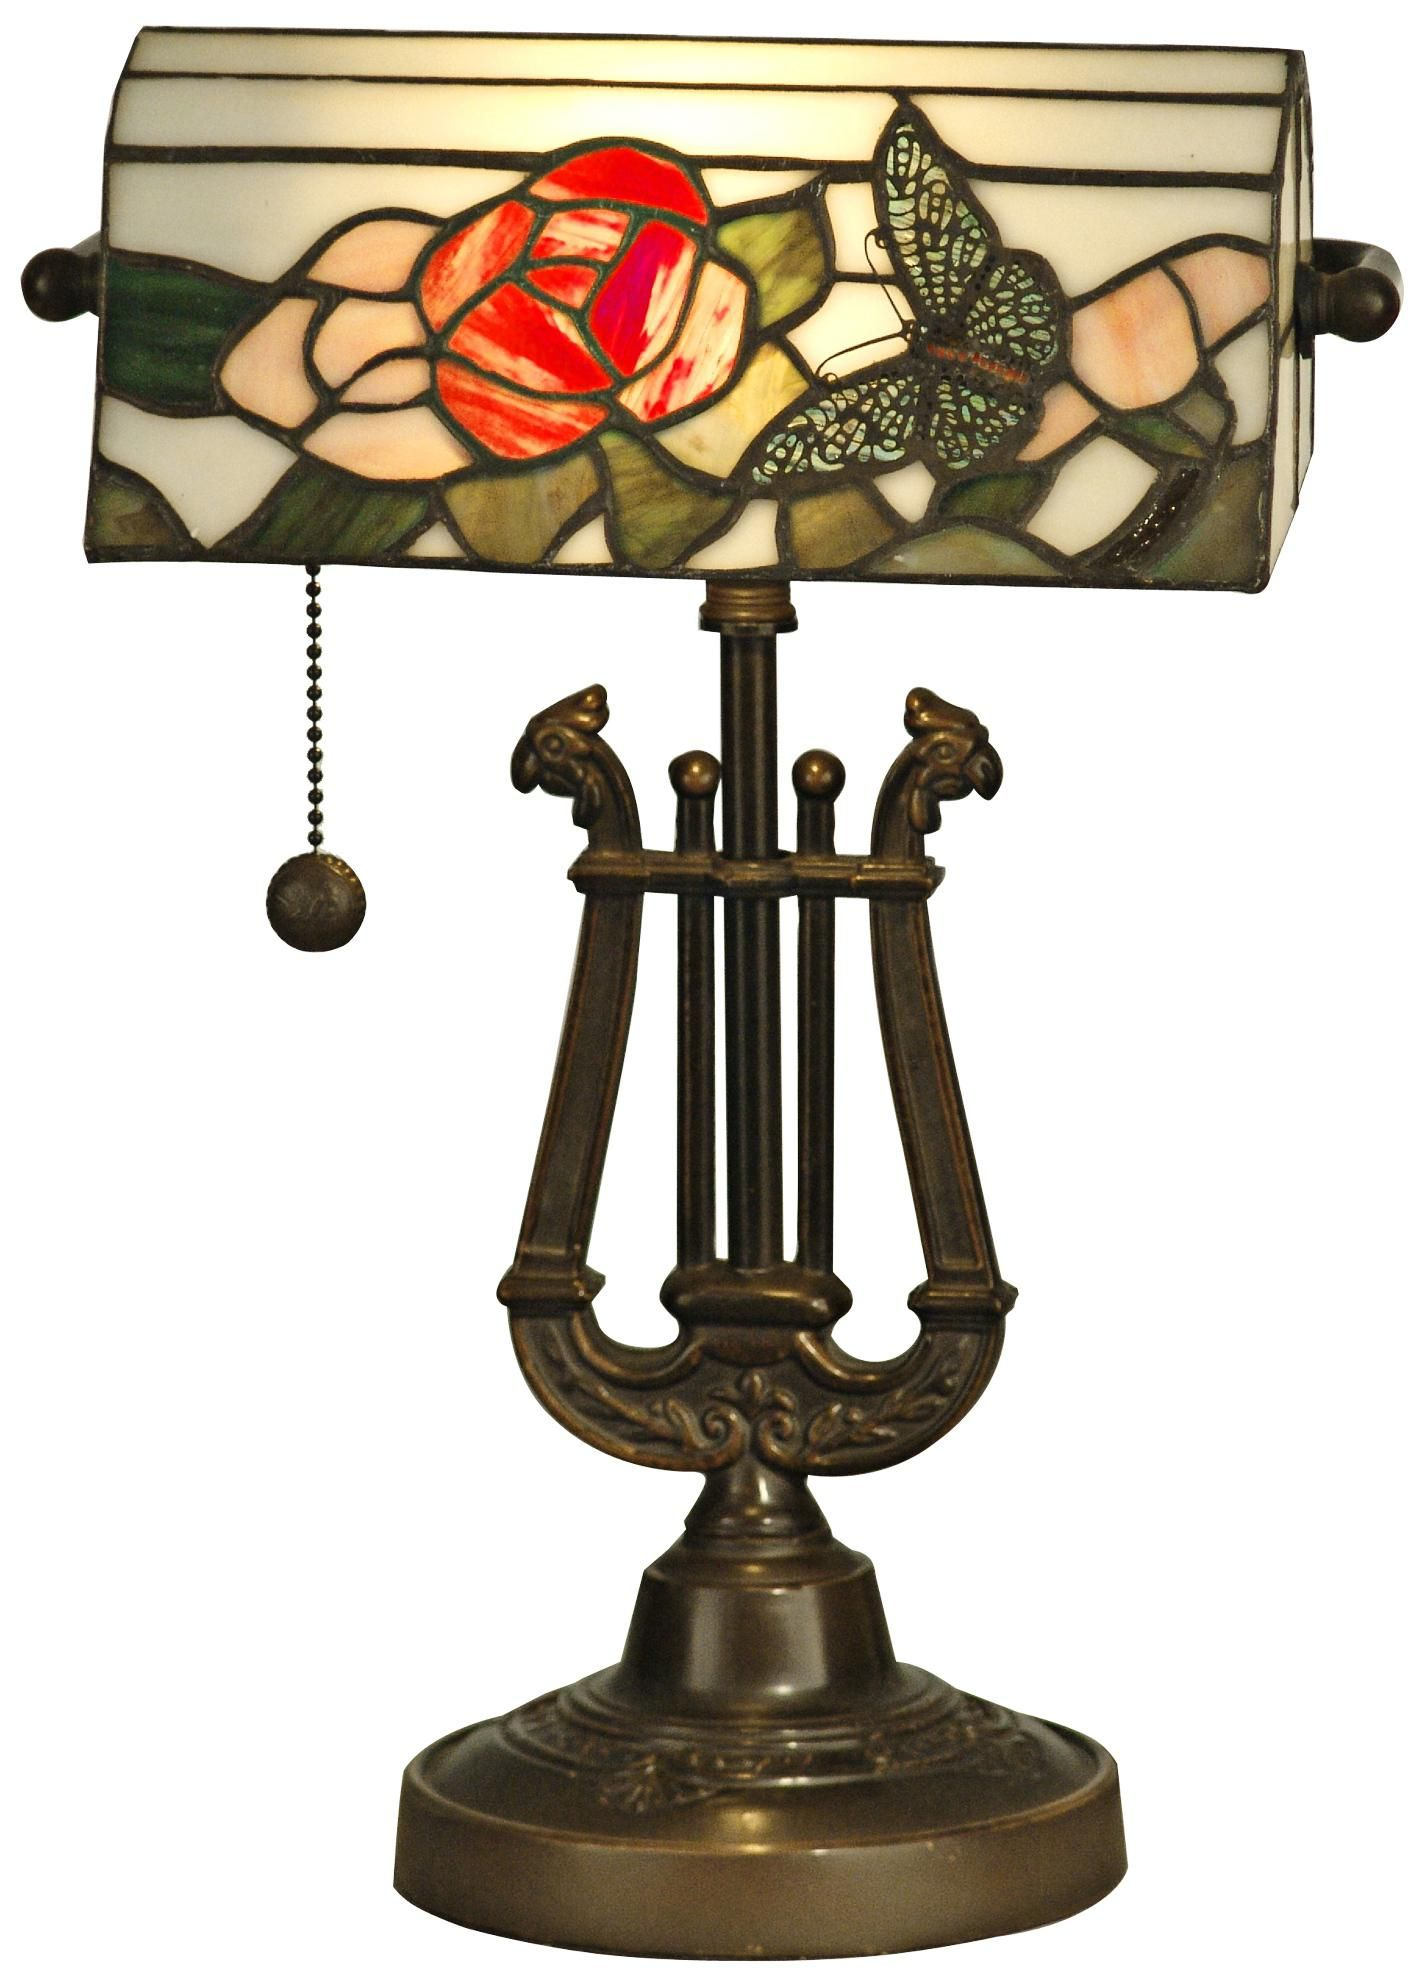 Dale tiffany floor lamps foter - Dale Tiffany Broadview Tiffany Style Banker S Lamp